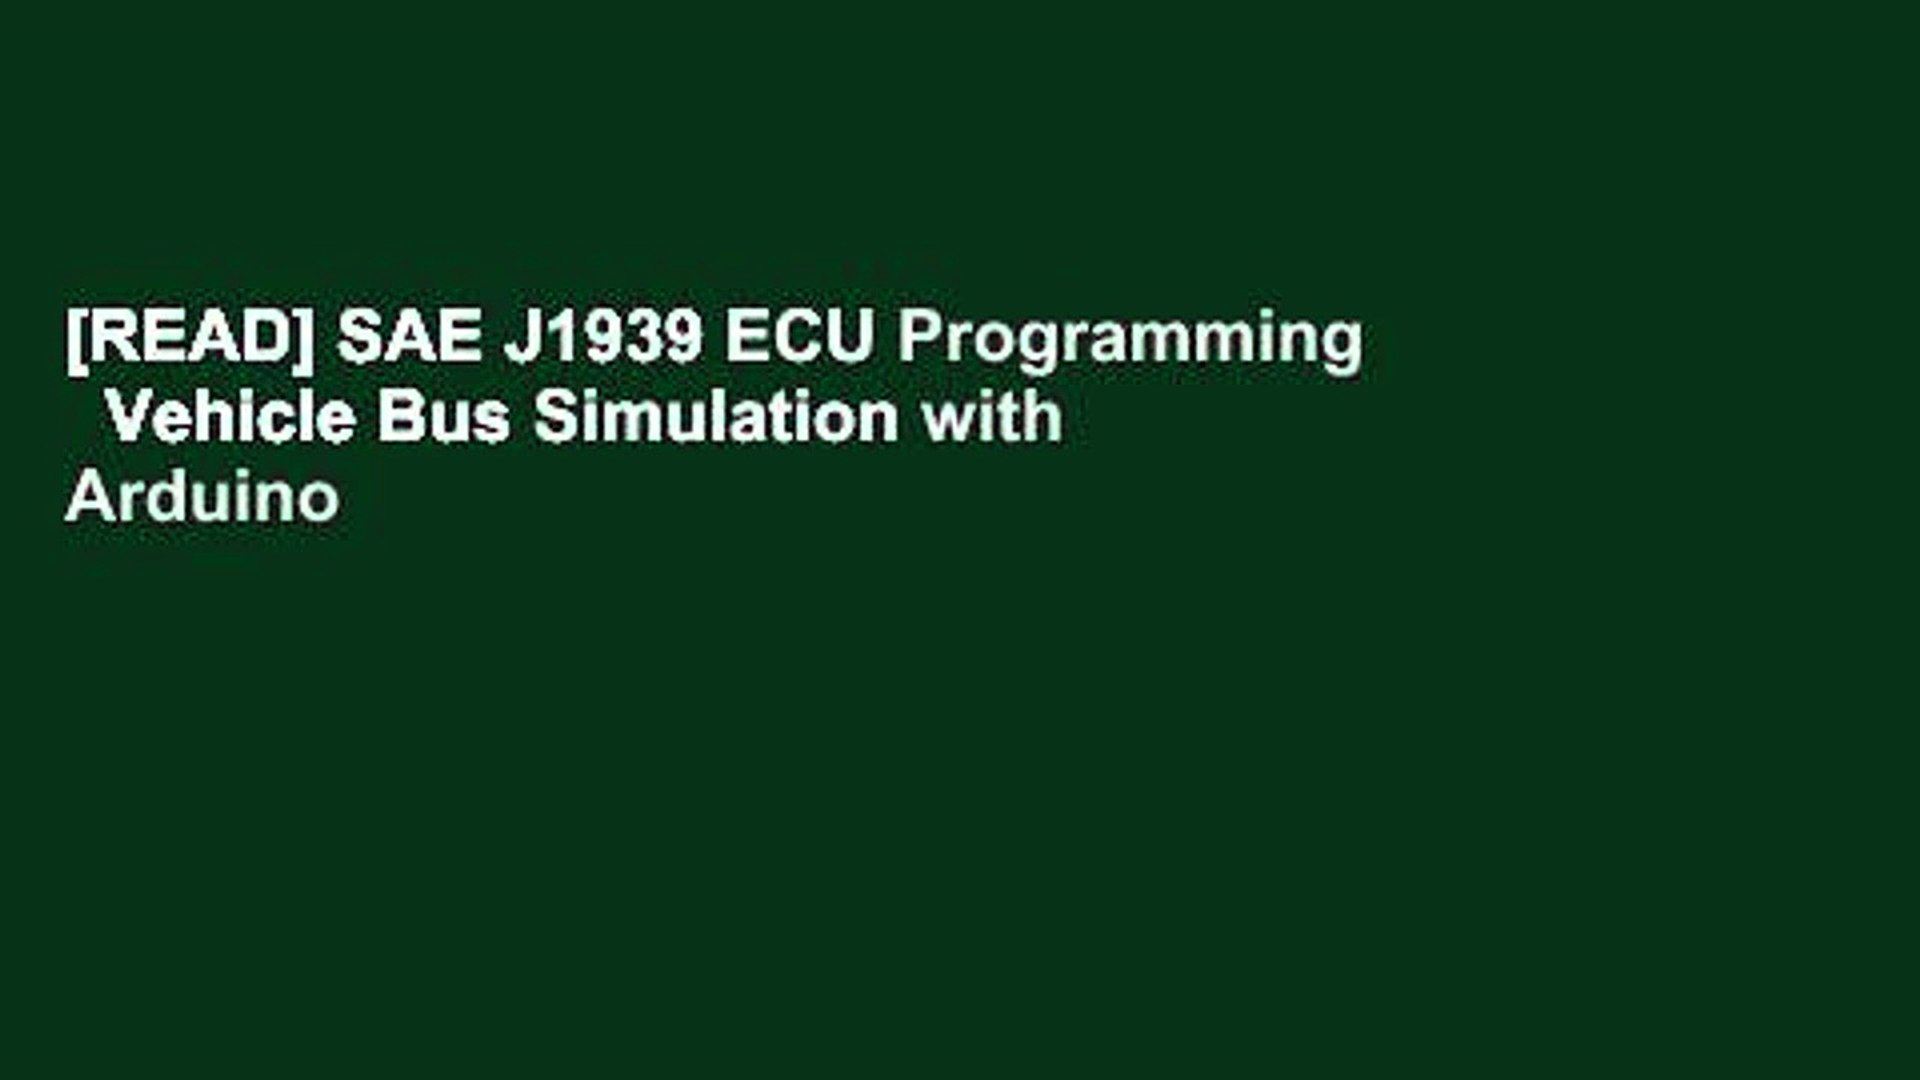 [READ] SAE J1939 ECU Programming Vehicle Bus Simulation with Arduino